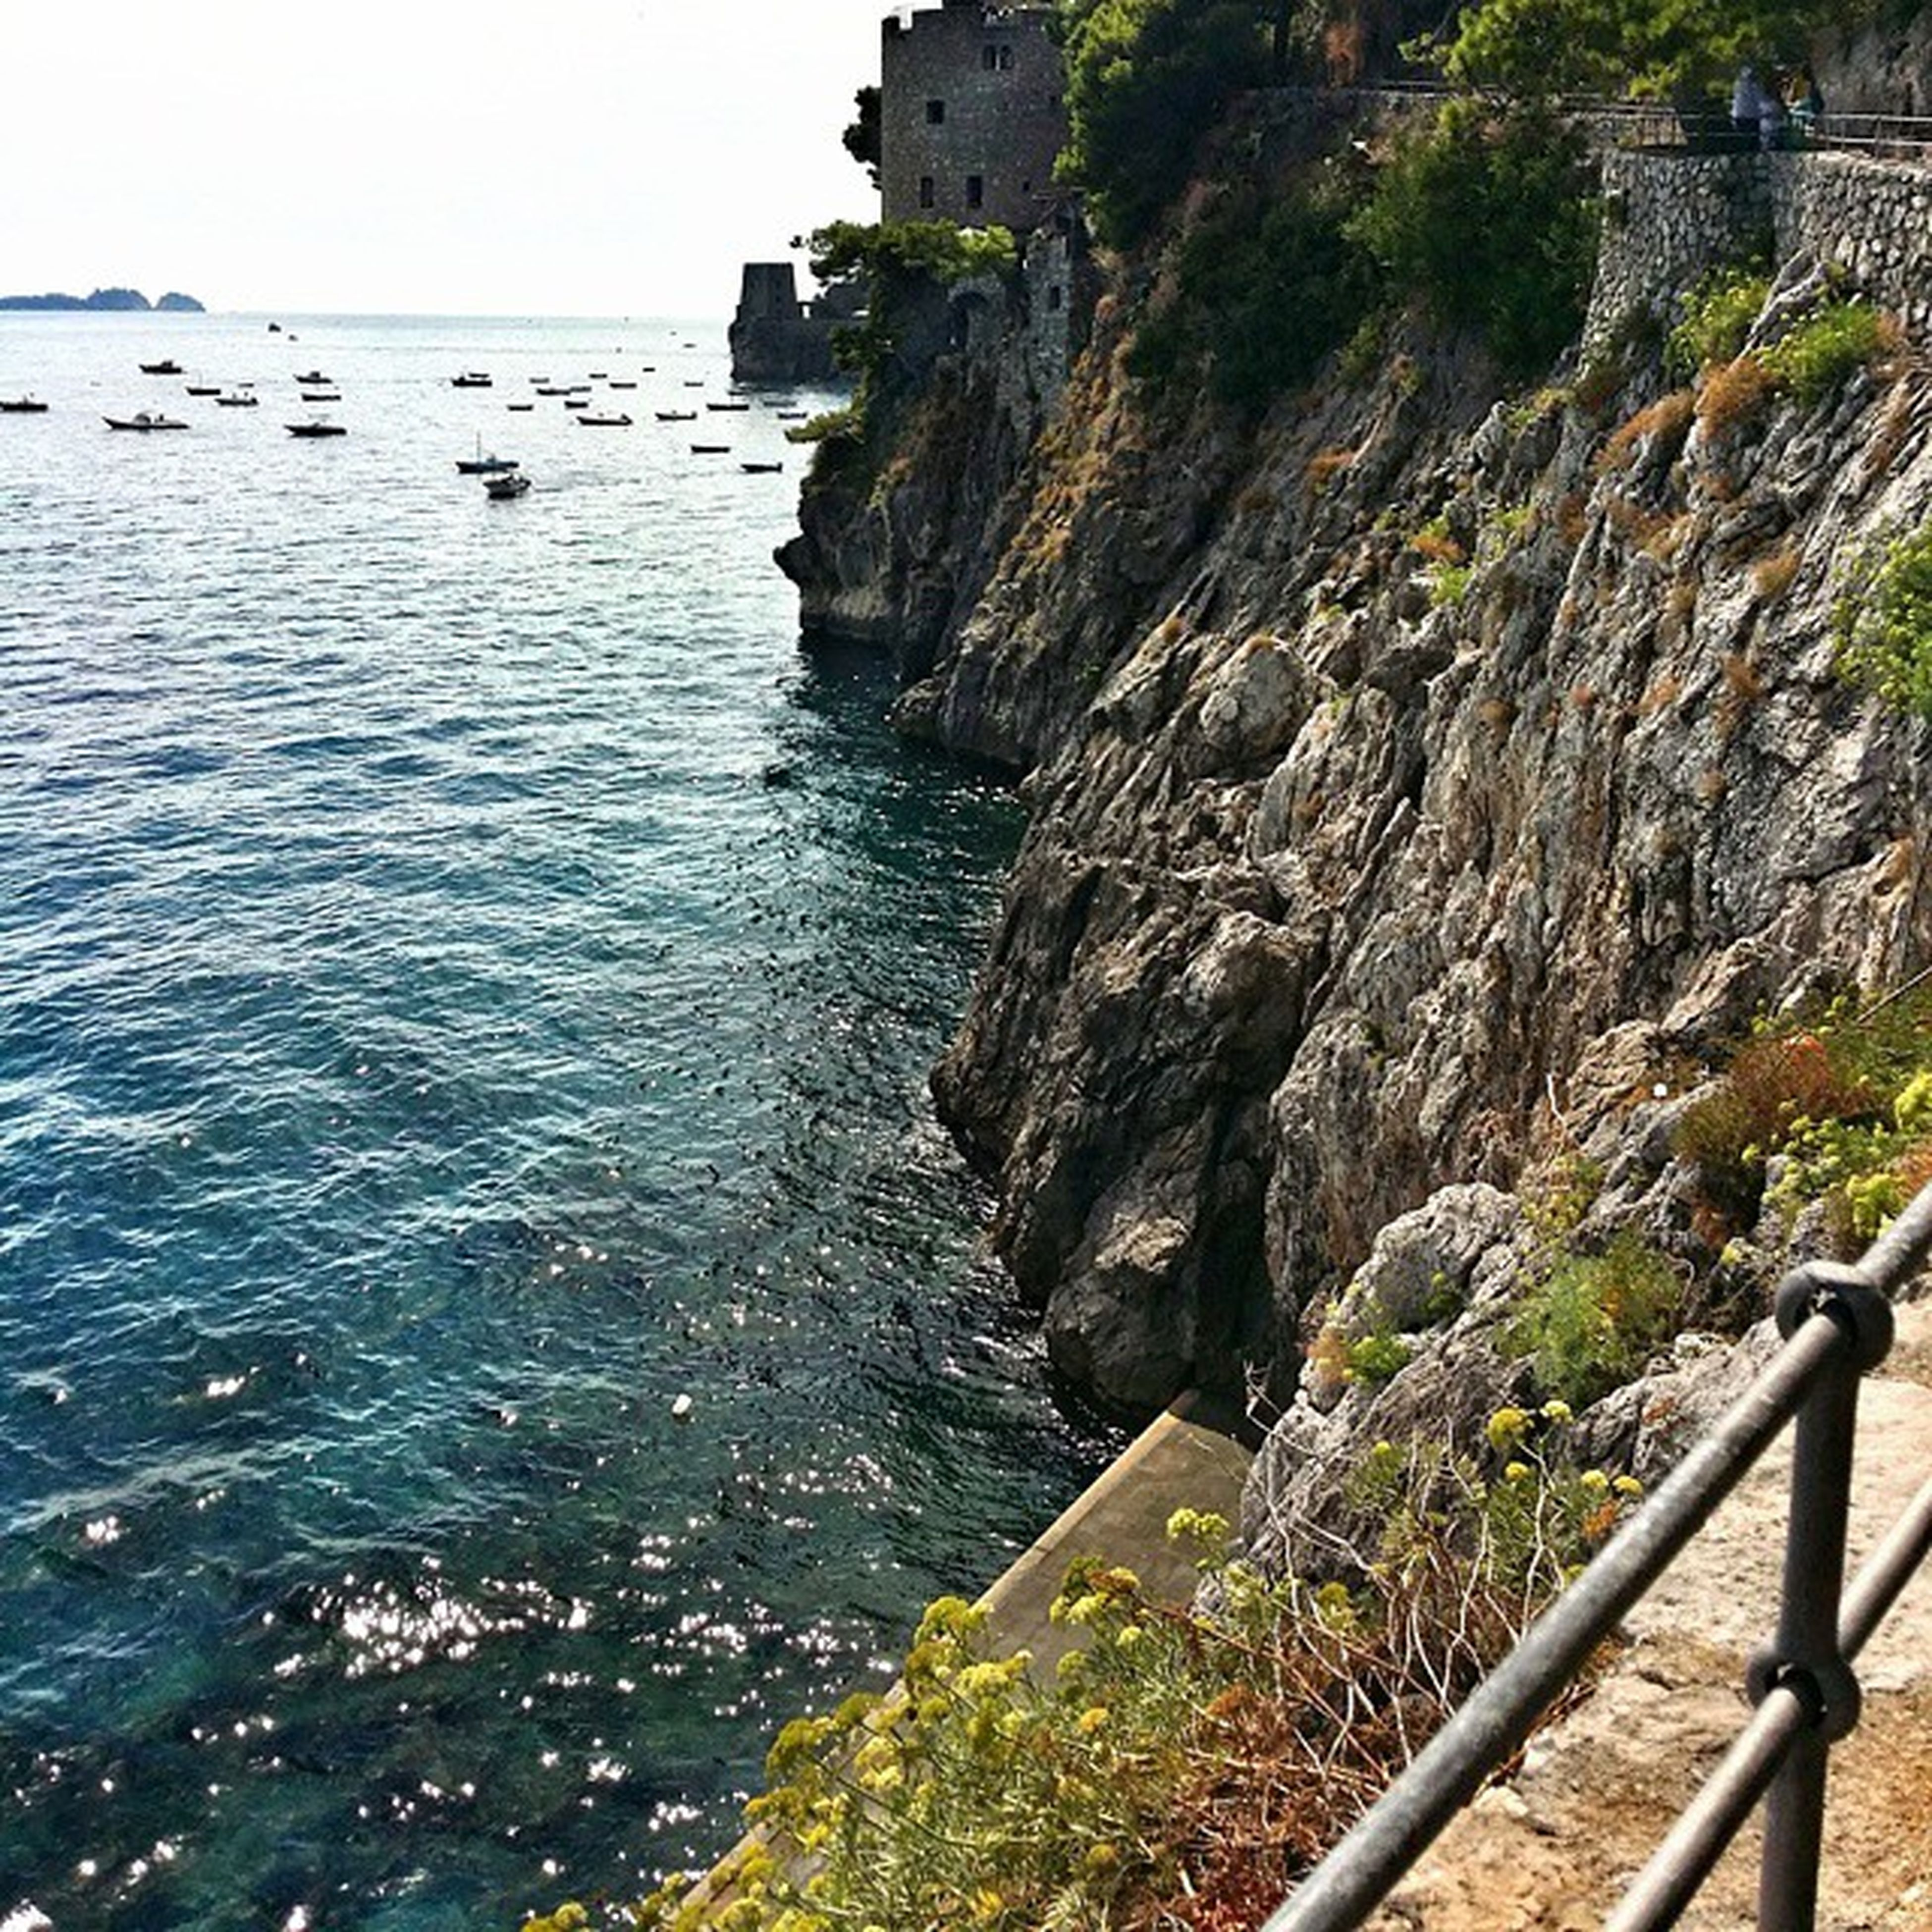 water, sea, tranquil scene, scenics, tranquility, horizon over water, high angle view, beauty in nature, nature, mountain, coastline, railing, rock - object, cliff, rock formation, shore, idyllic, day, beach, built structure